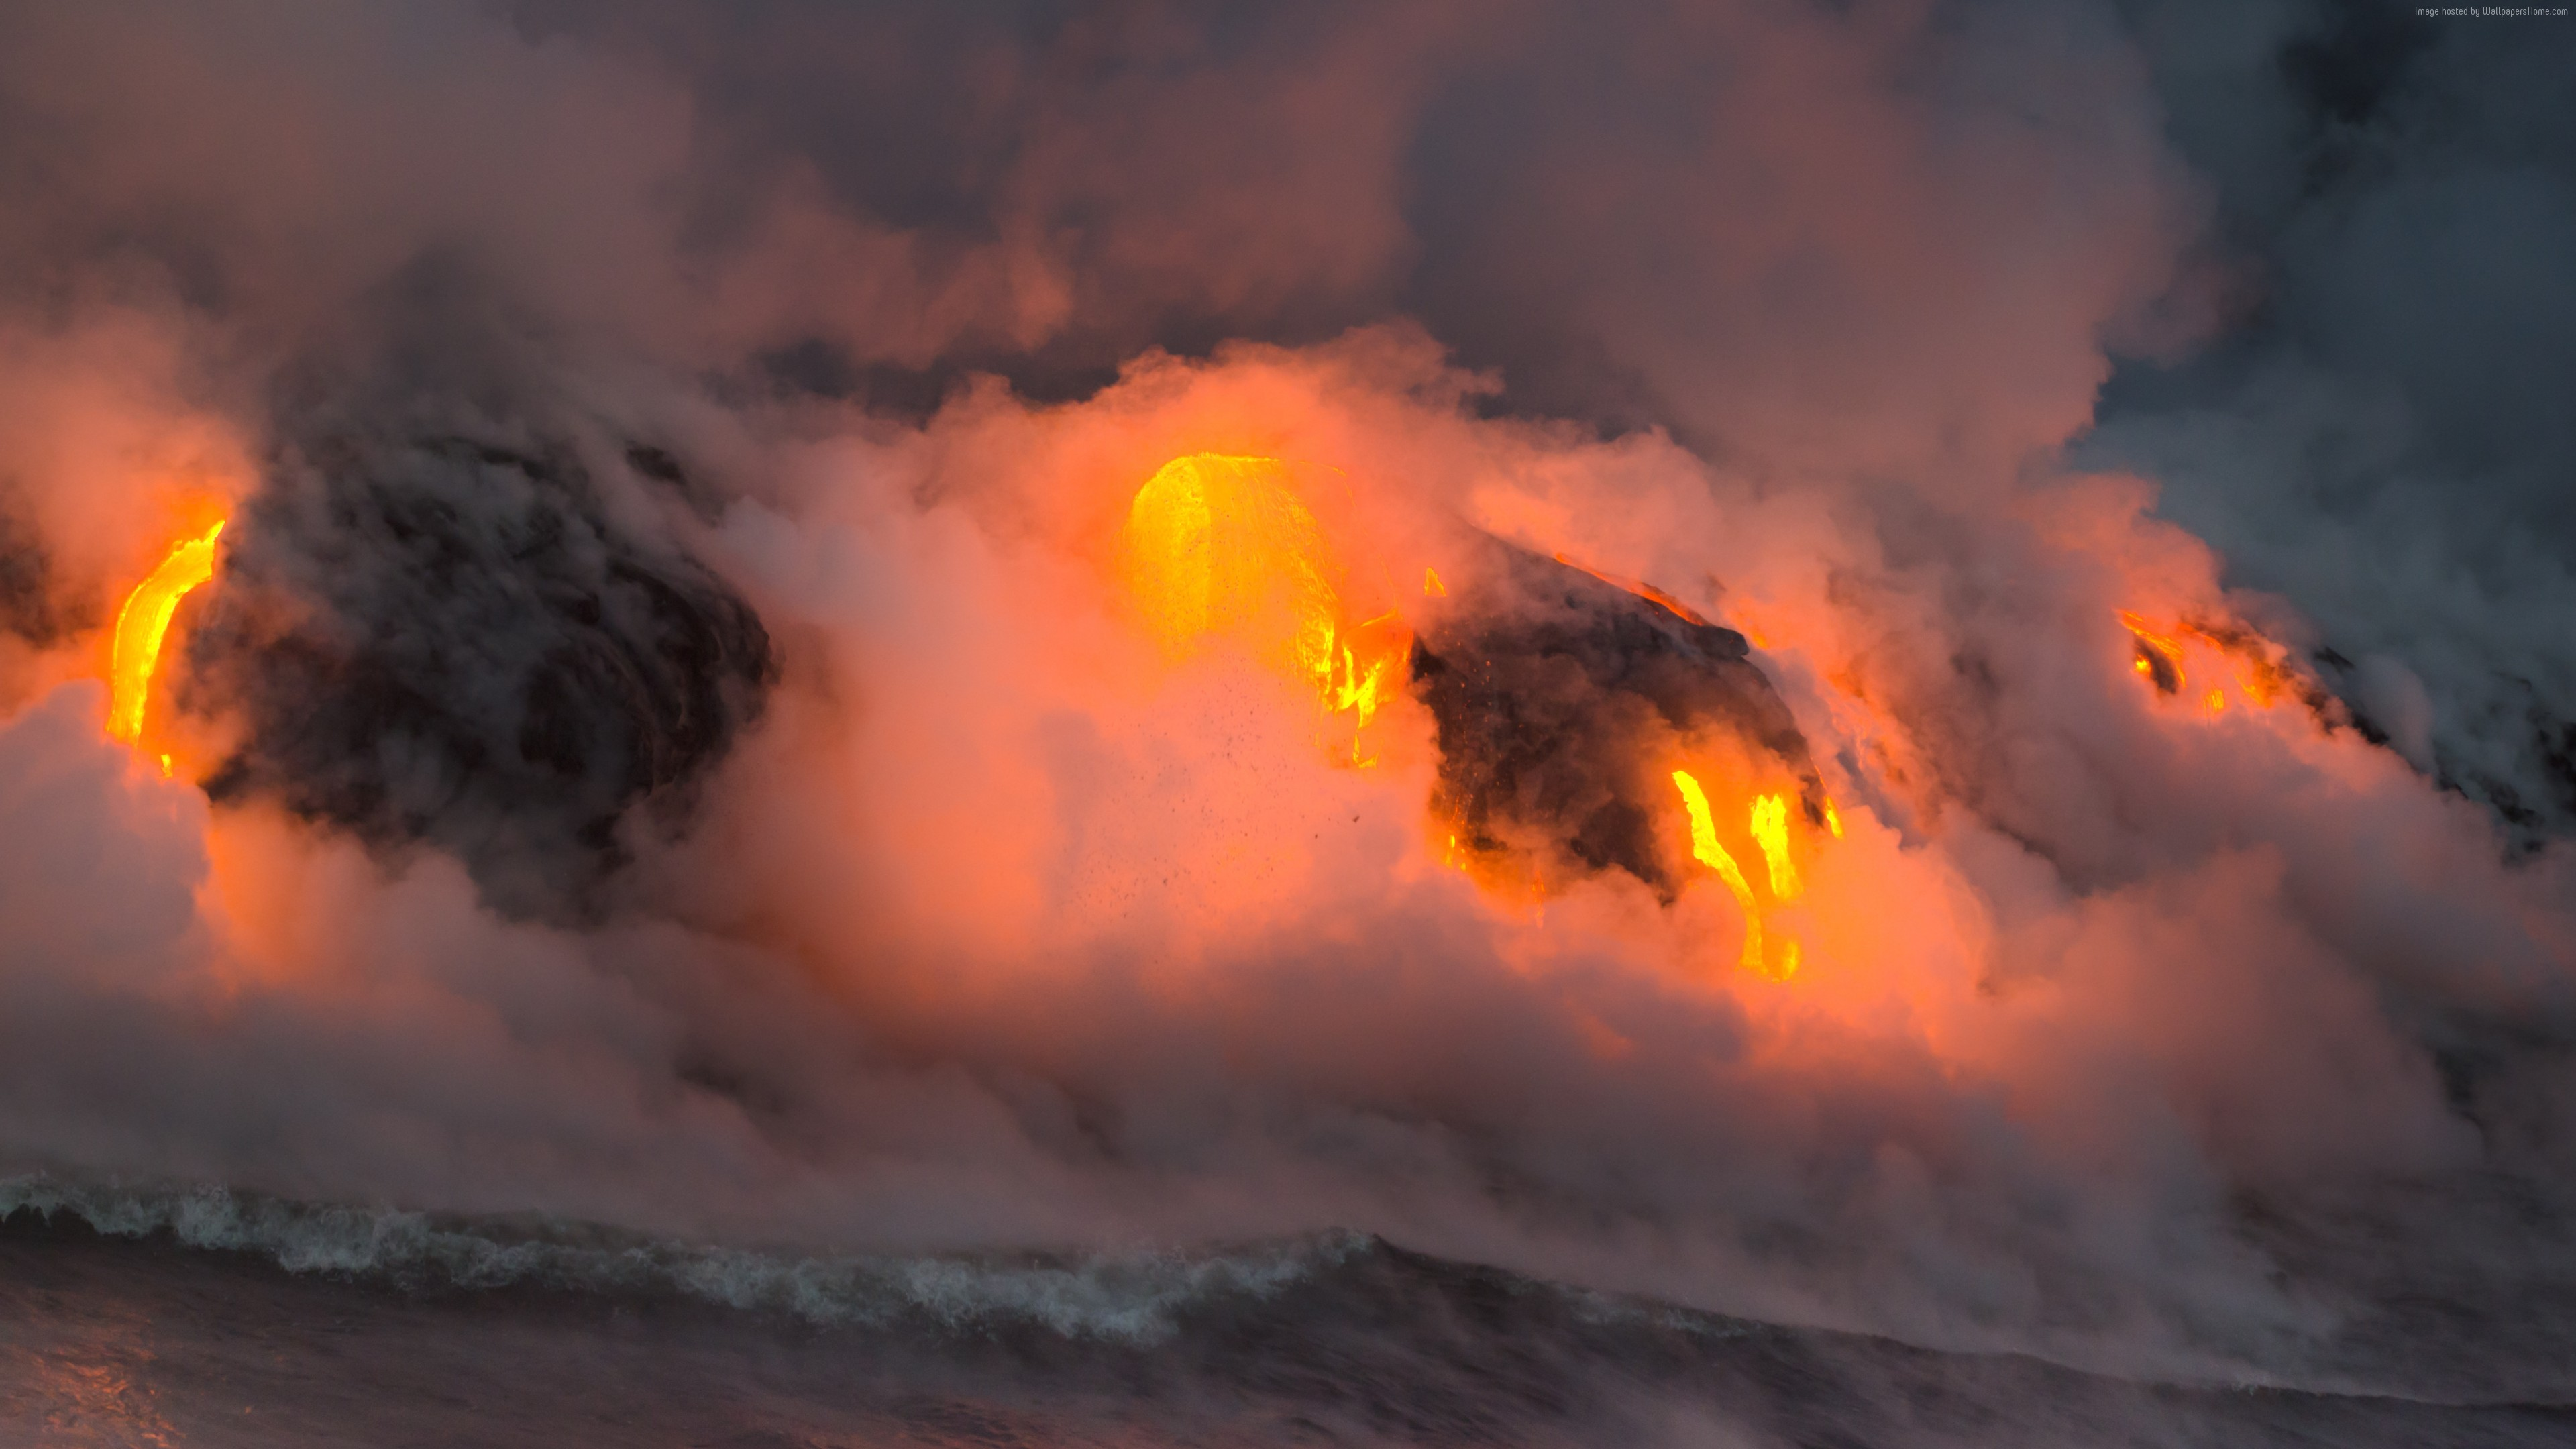 Wallpaper Hawaii, 5k, 4k wallpaper, 8k, eruption, volcano, travel, tourism, lava, National Geographic Traveler Photo Contest, Travel